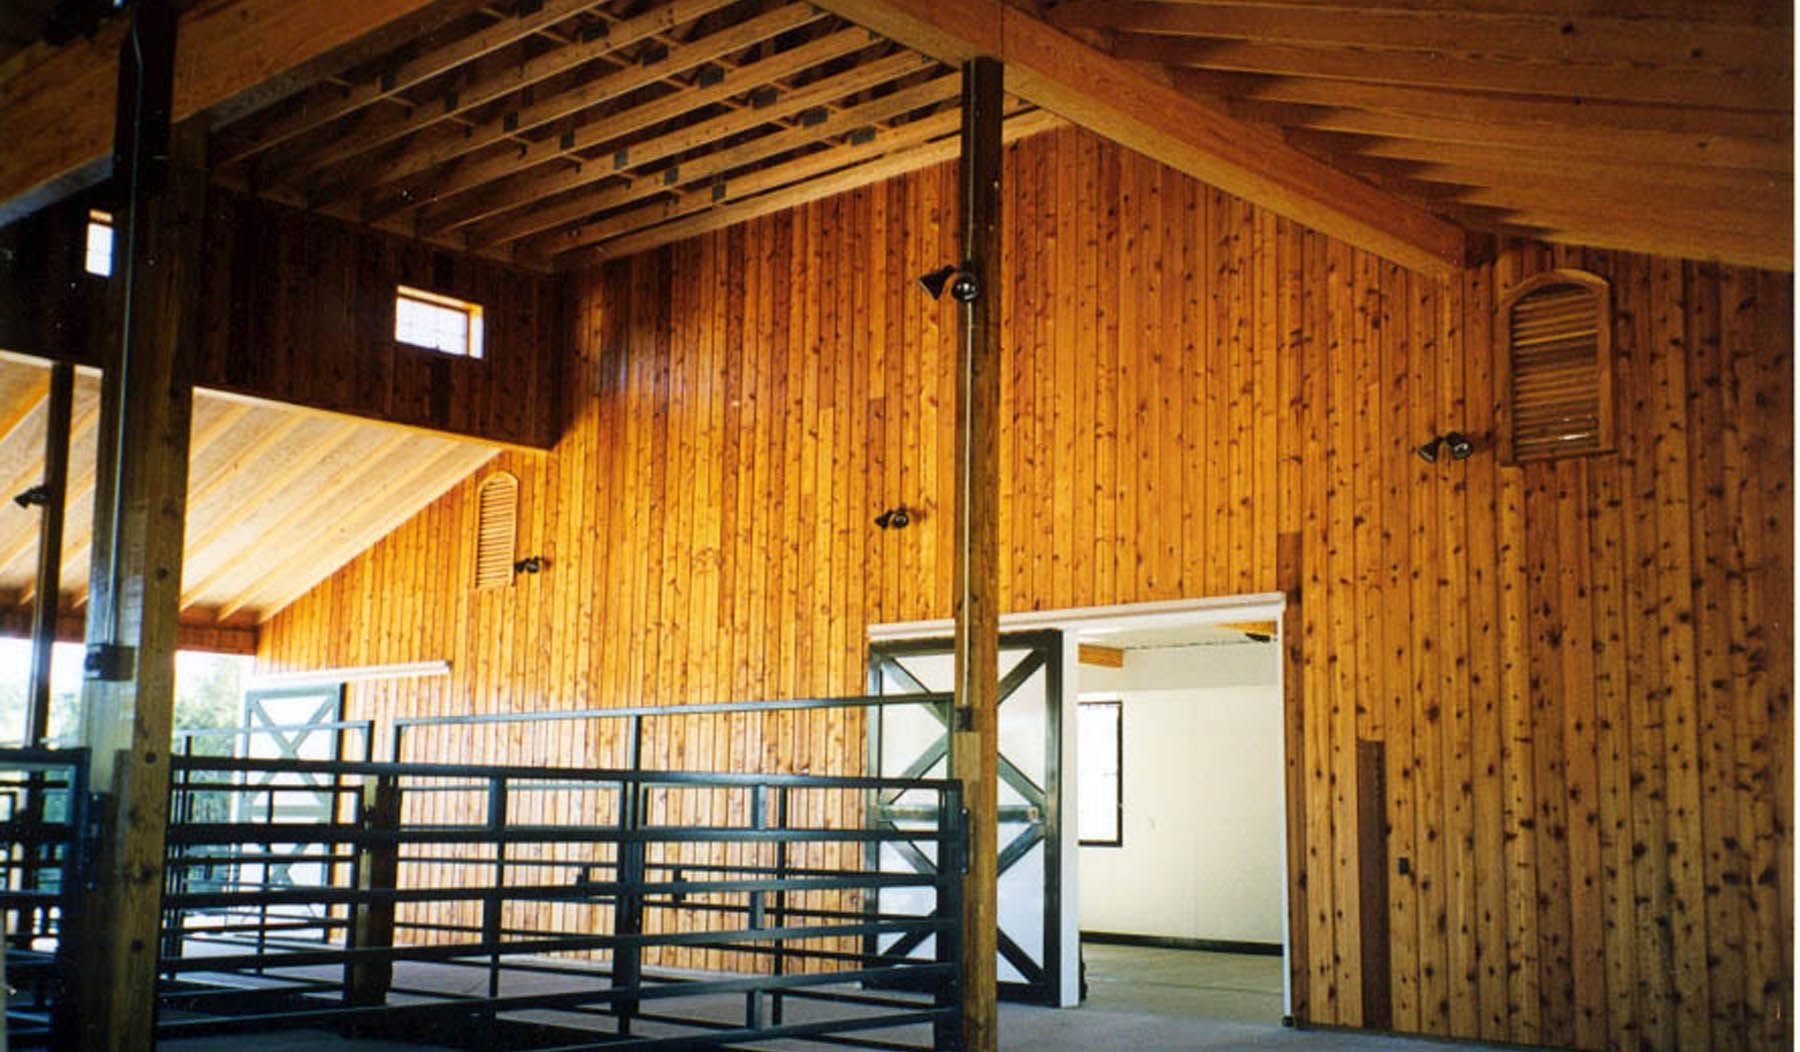 ^ 1000+ images about Barn Ideas on Pinterest